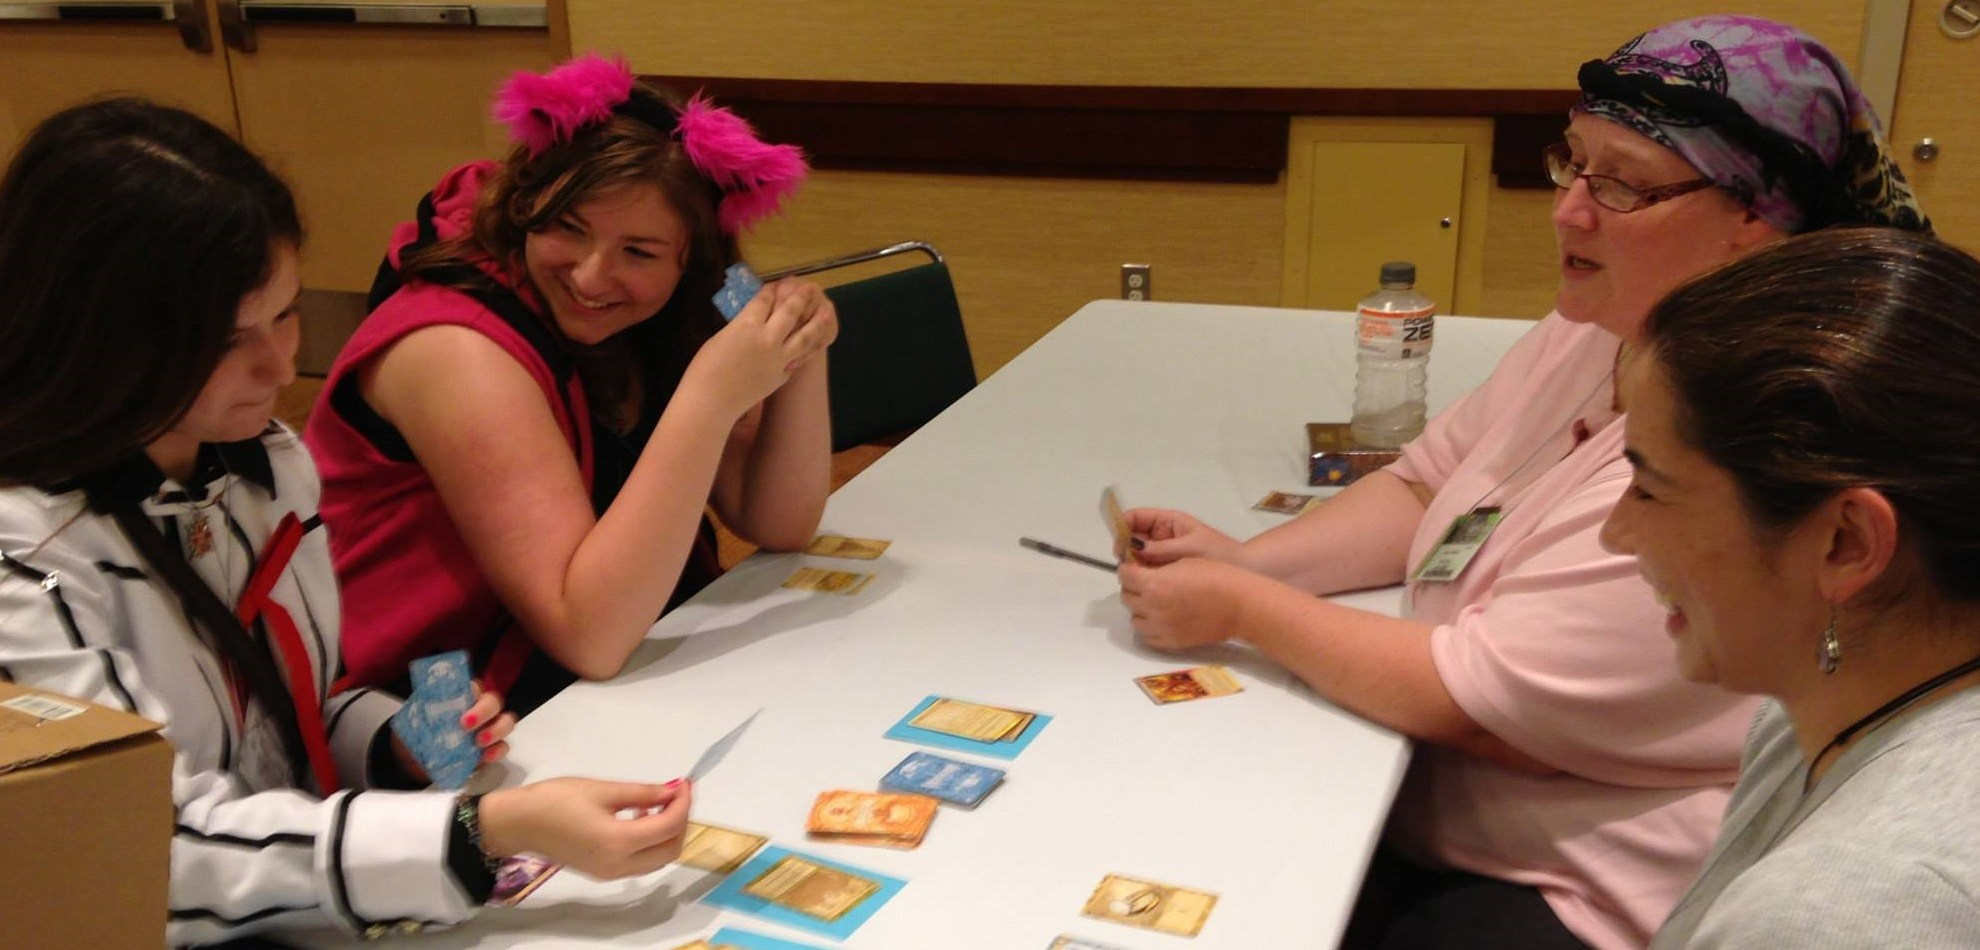 Everyone loved the cute dragons in Havok & Hijinks at GenCon 2013